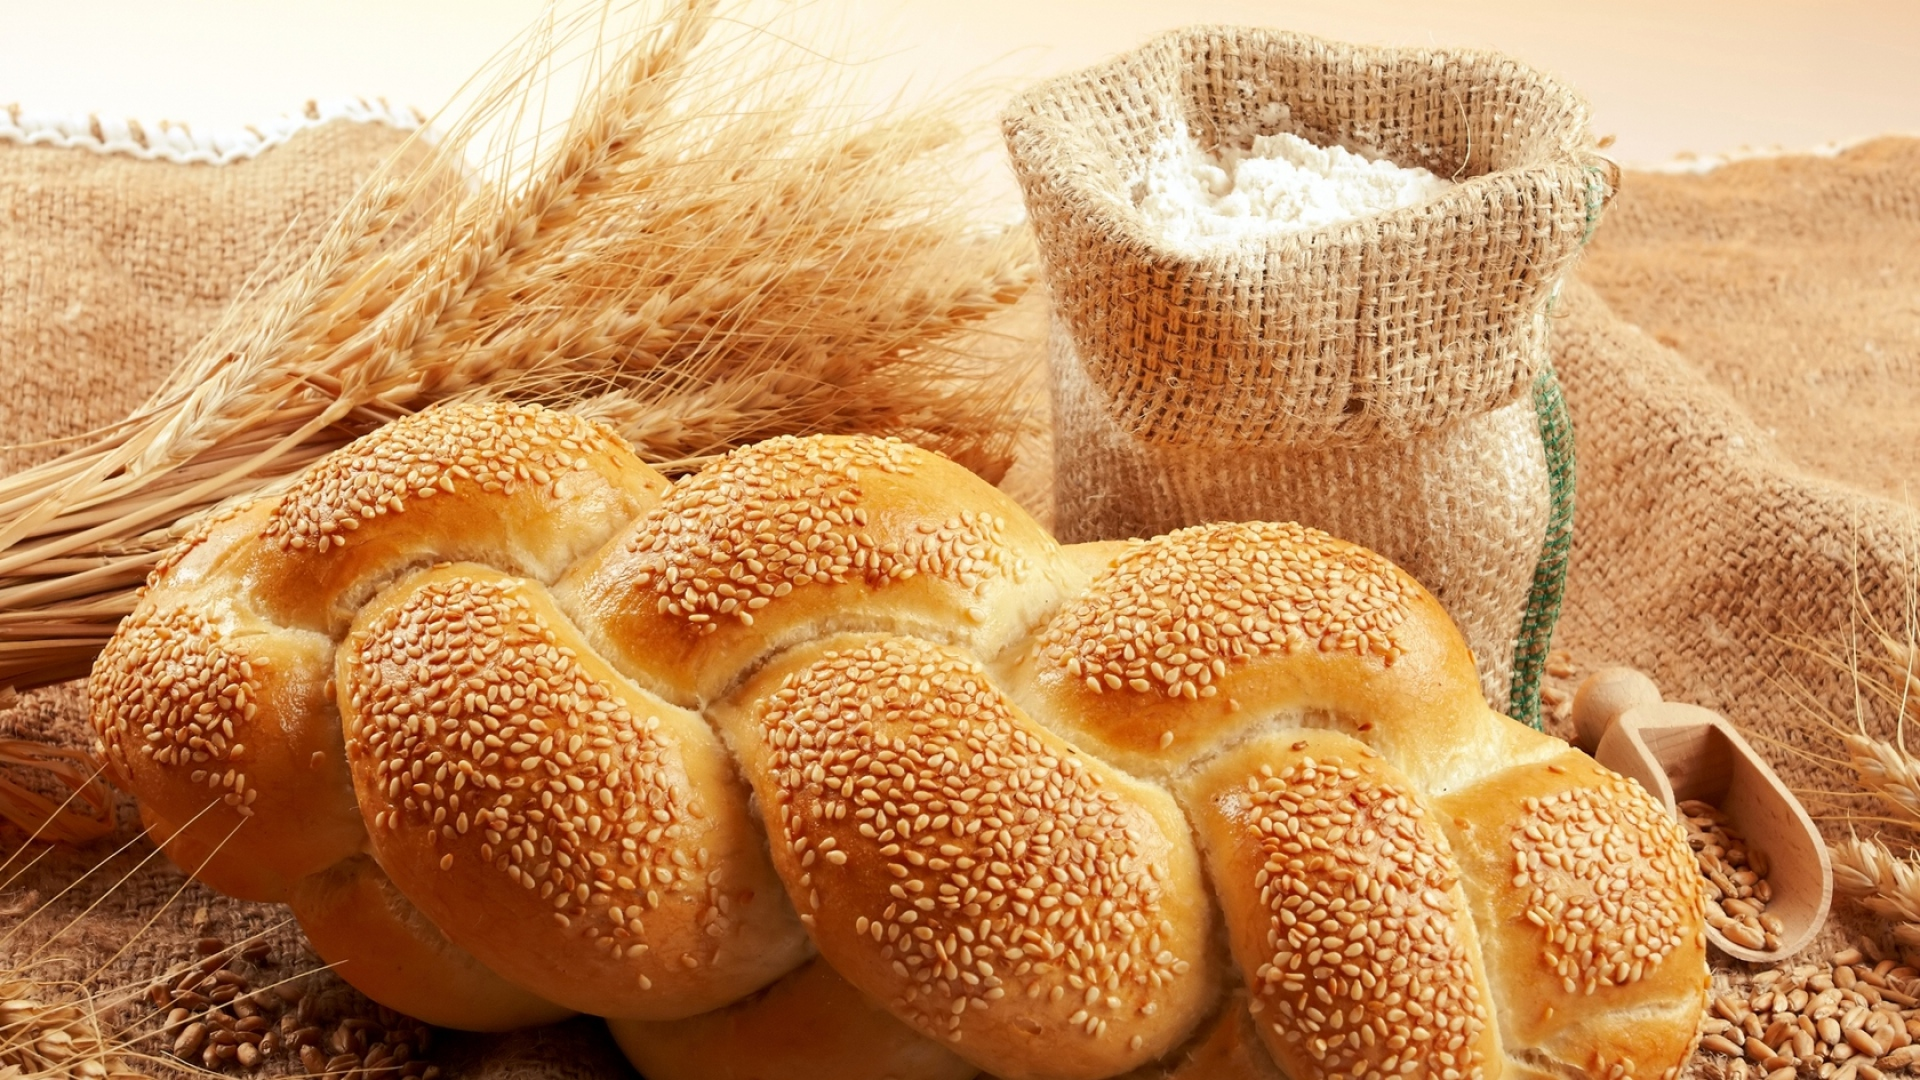 download wallpaper 1920x1080 bread, sesame, bag, flour, grain, wheat